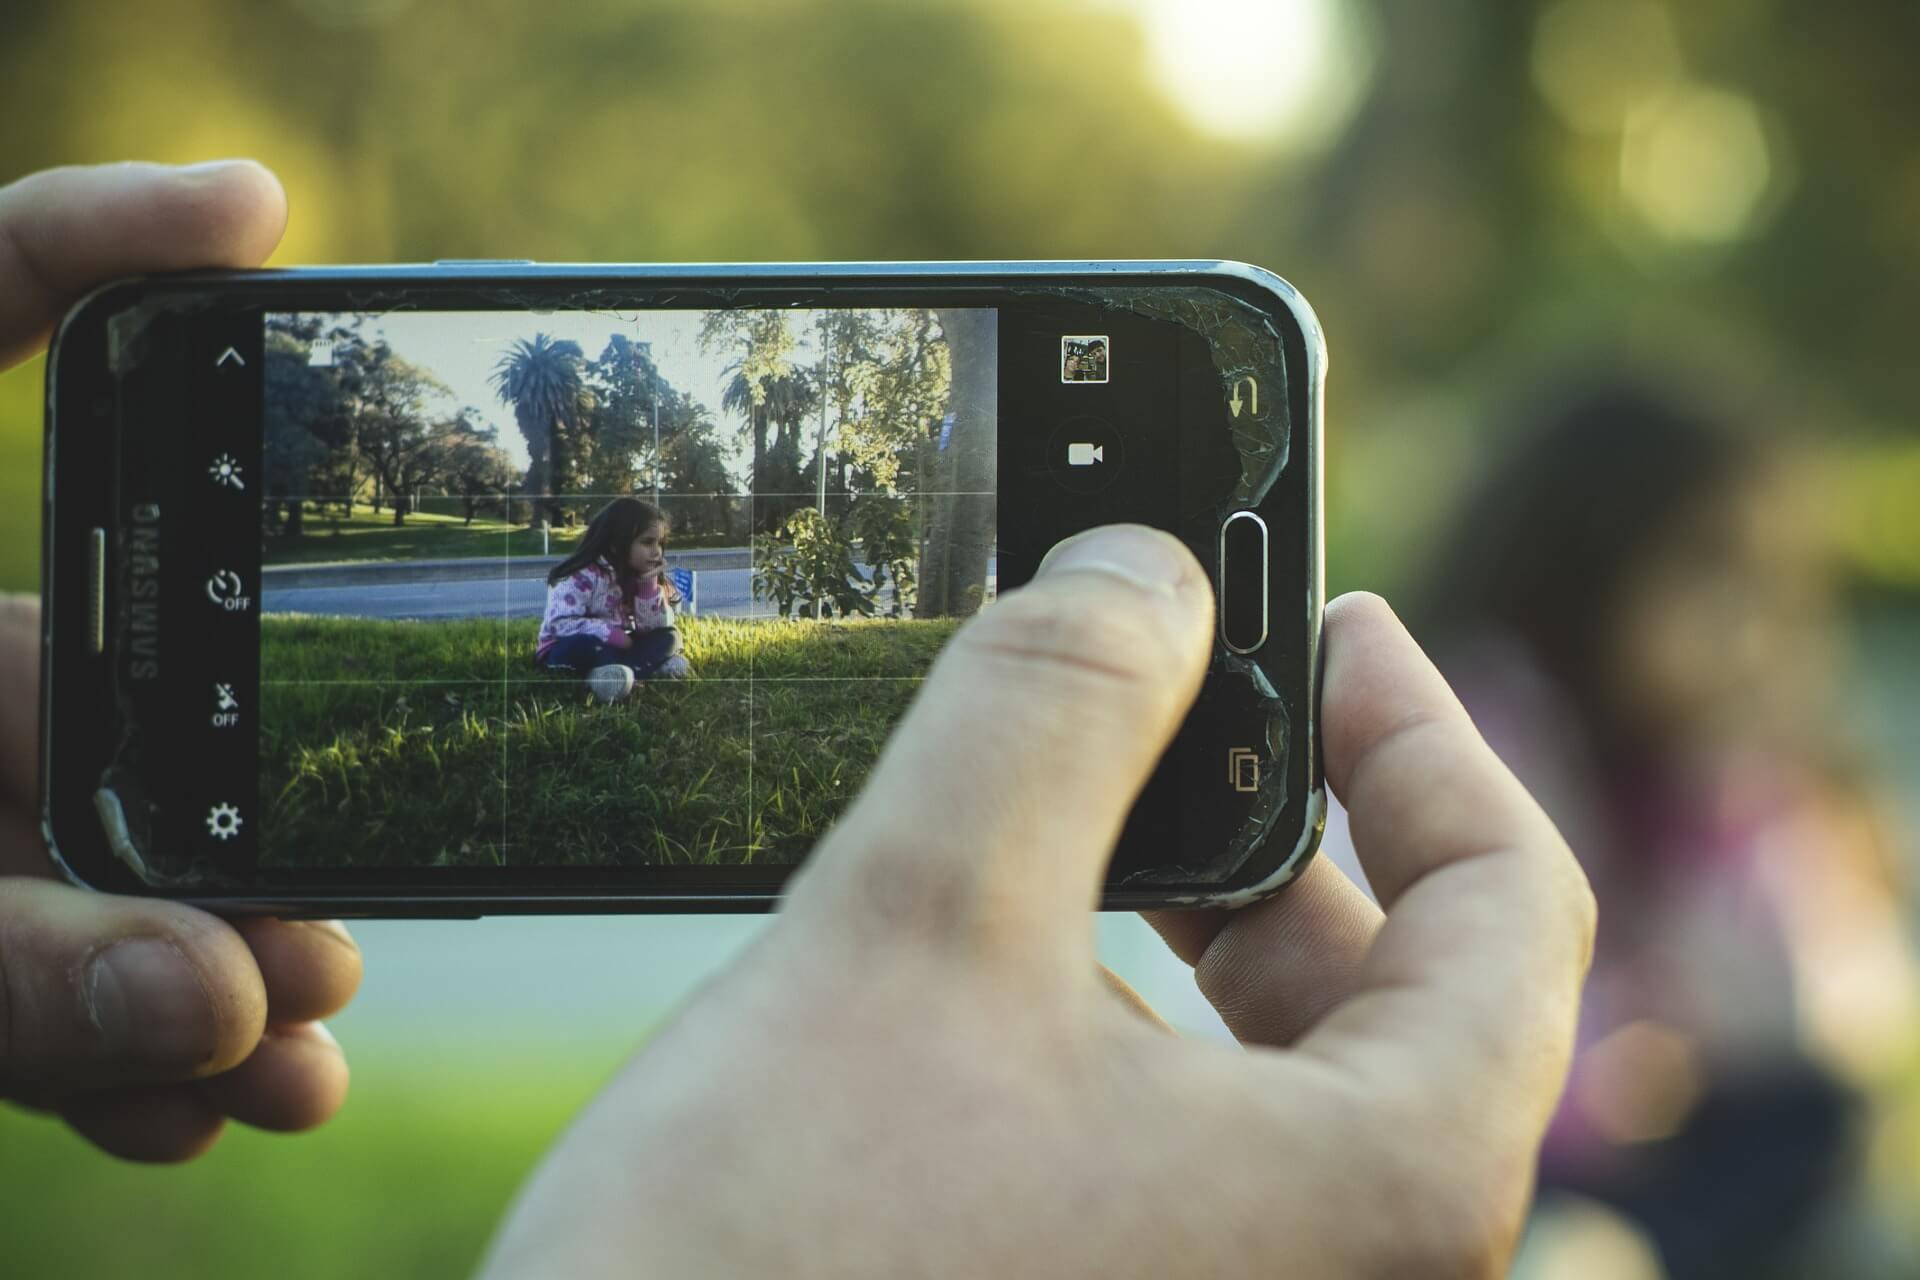 content/pt-br/images/repository/isc/2020/is-it-safe-to-post-photos-of-your-kids-online.jpg